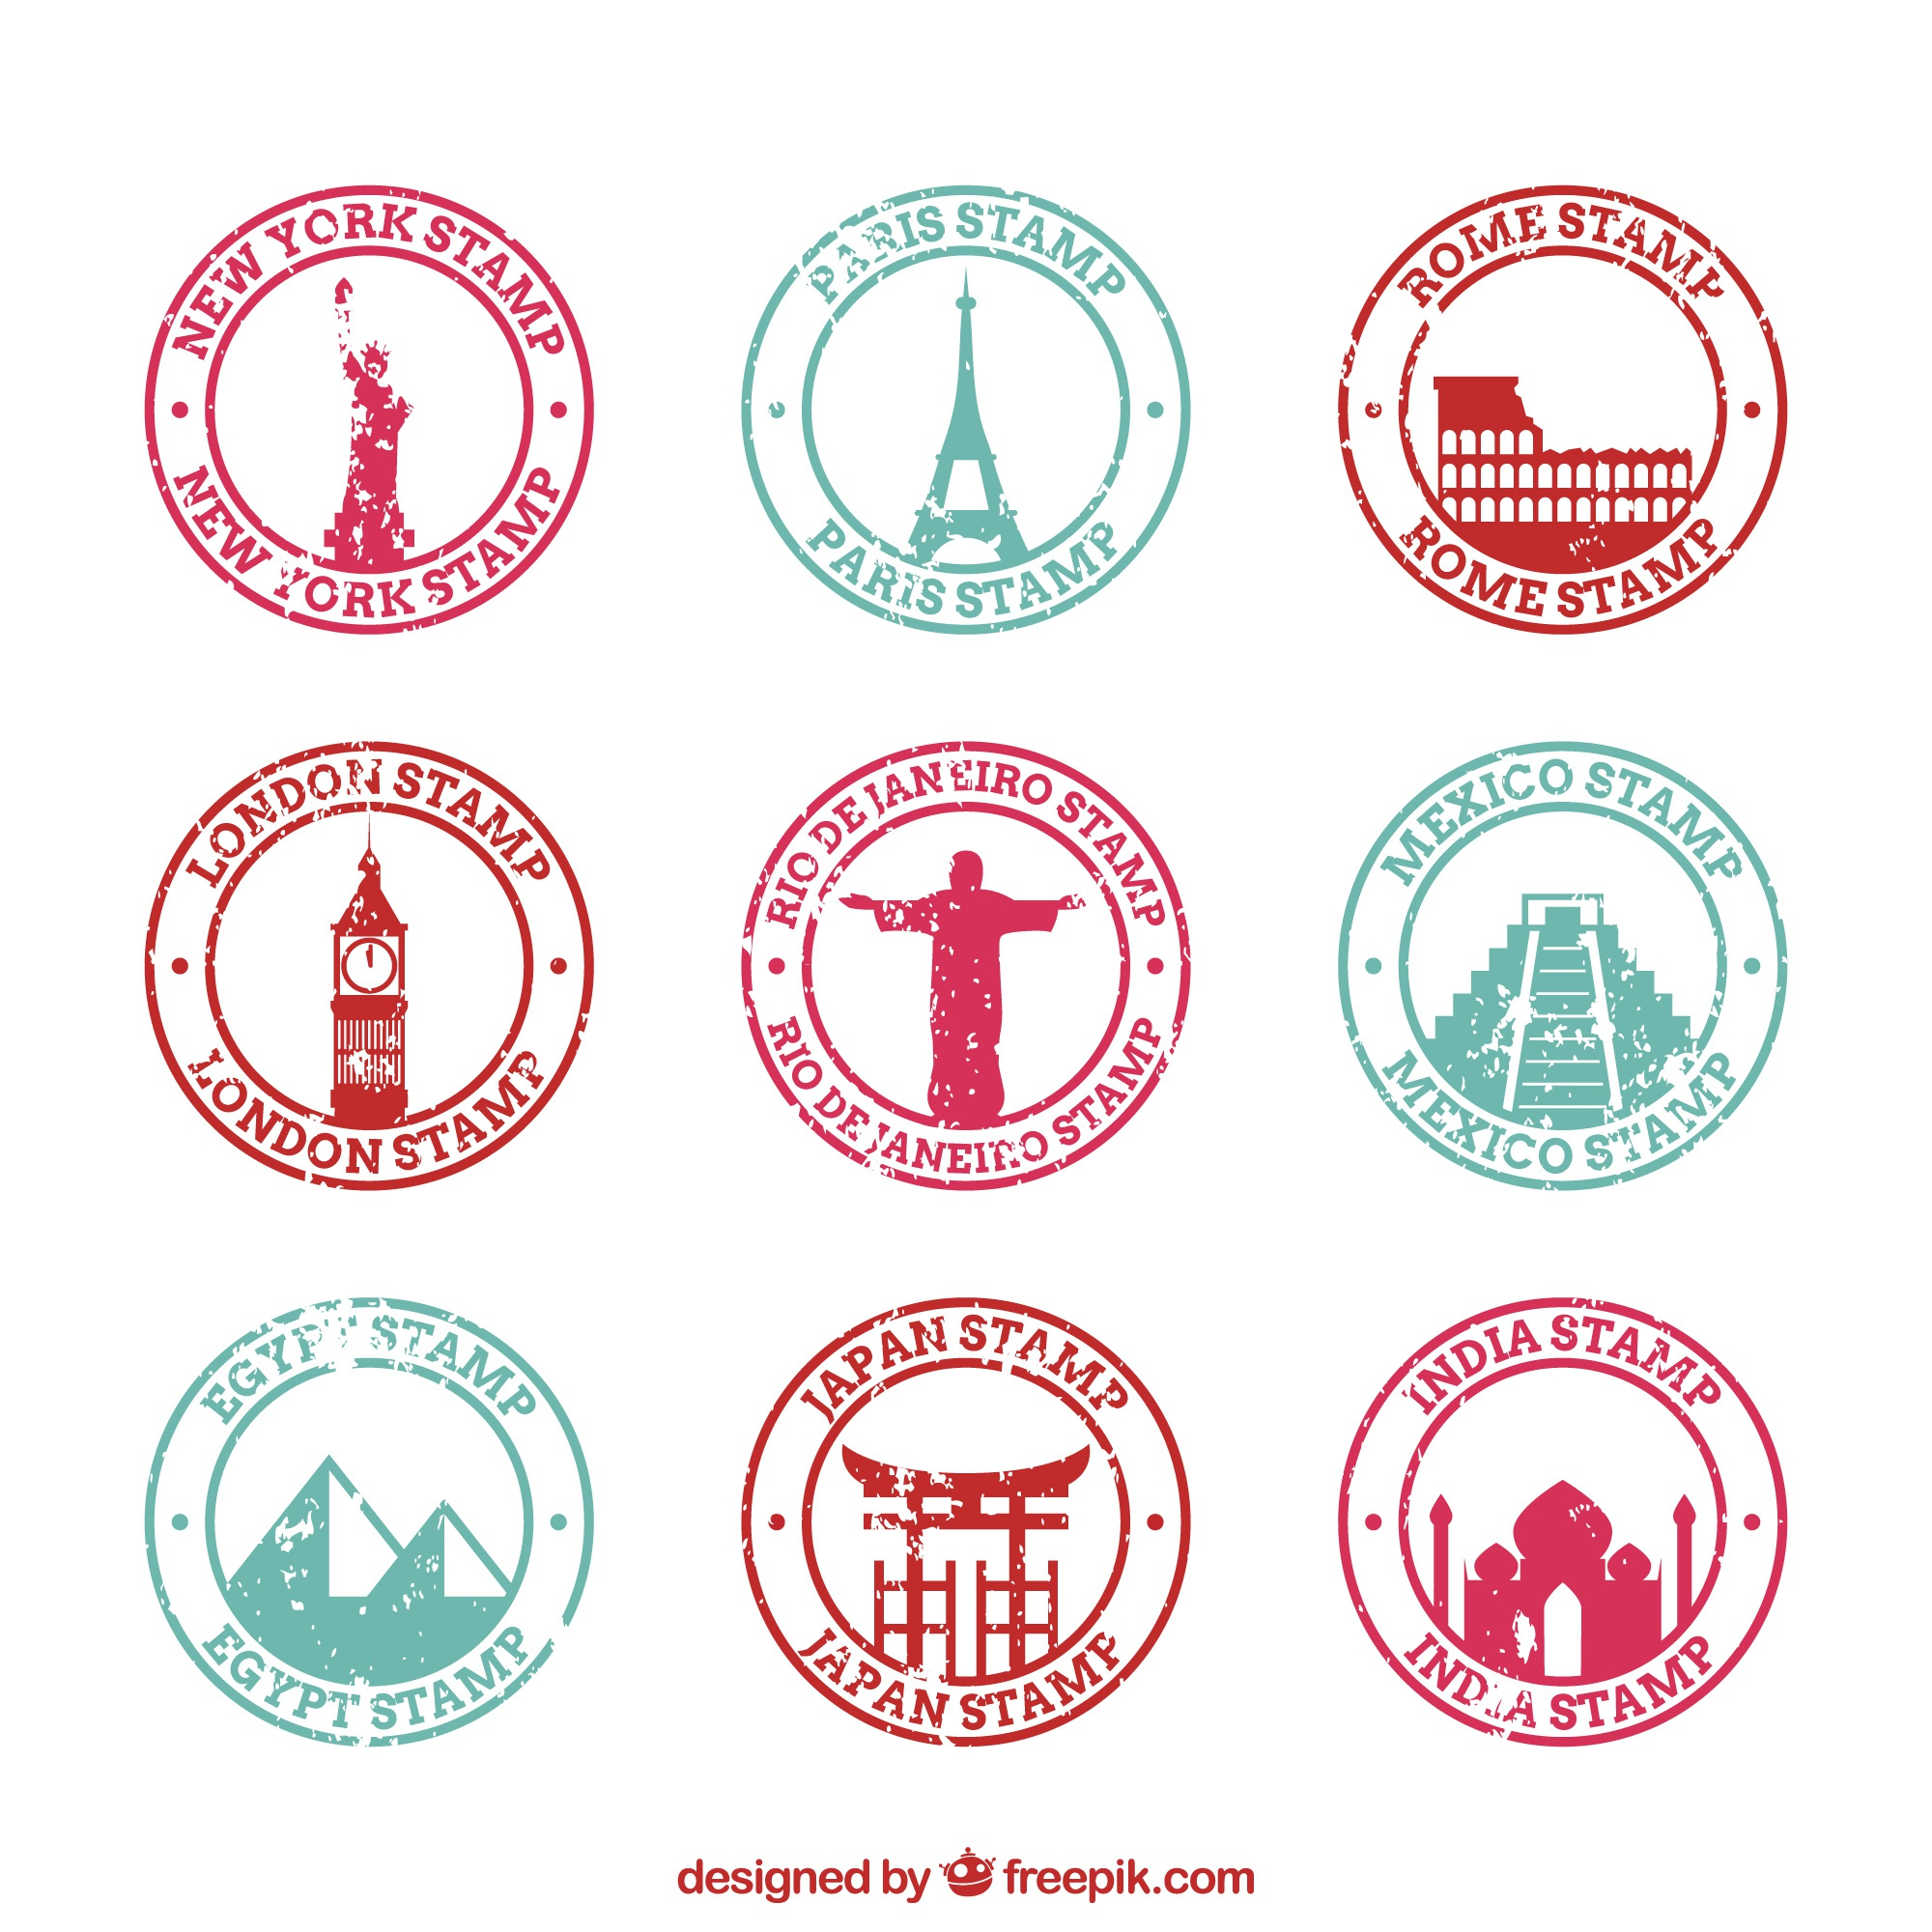 Assortment of round city stamps